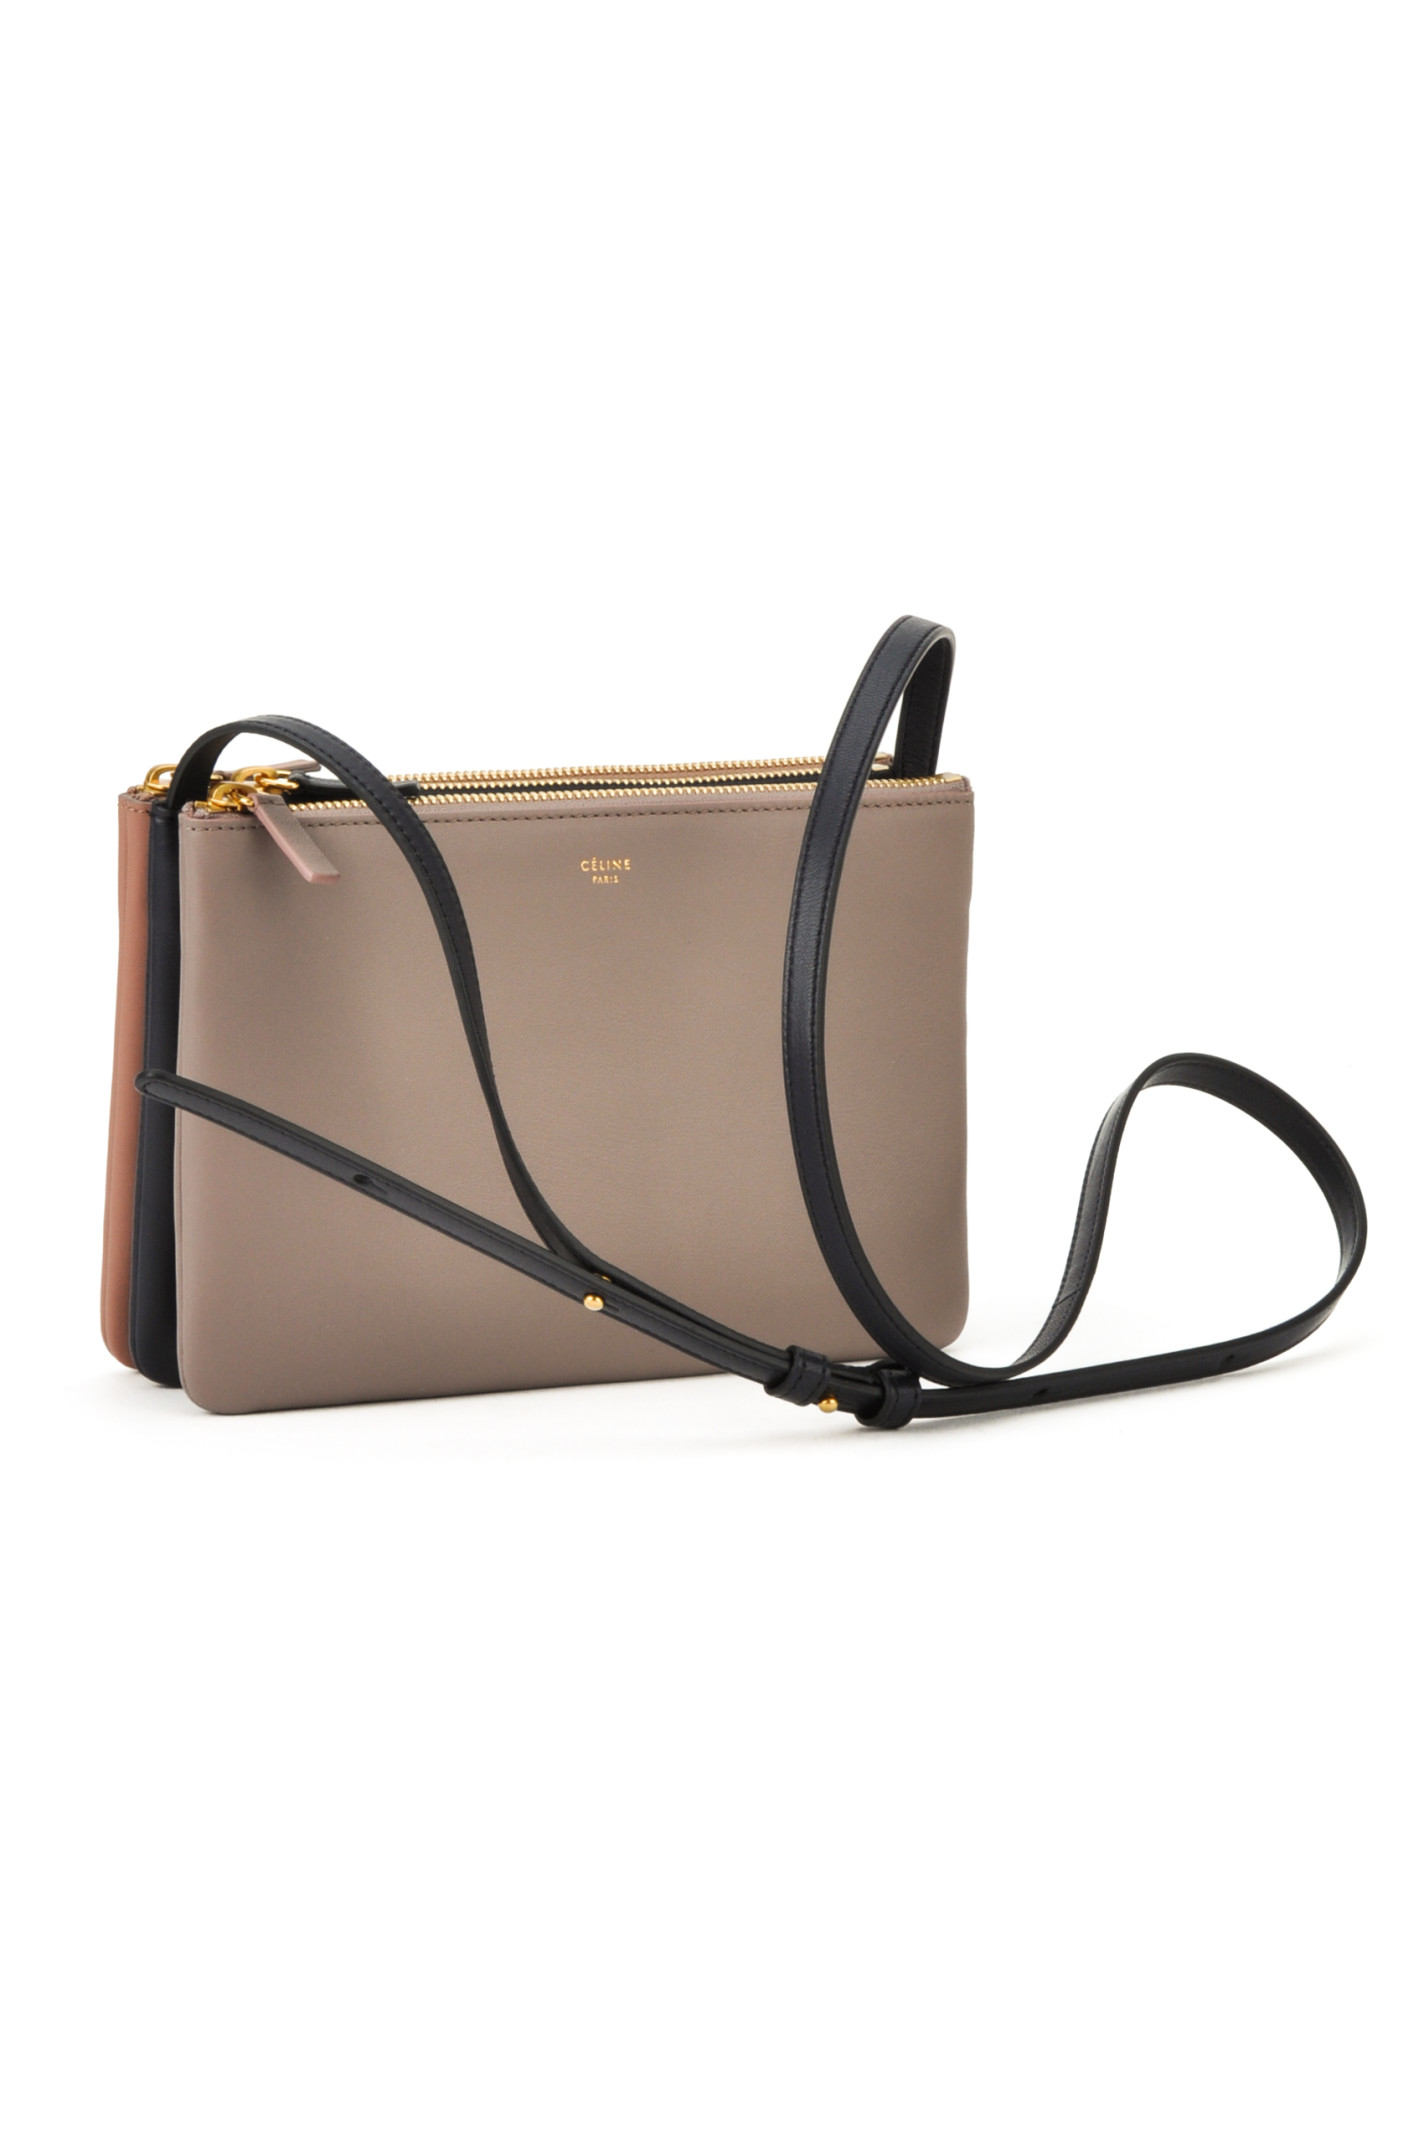 celine bag gray yslk  celine camel leather handbag trio